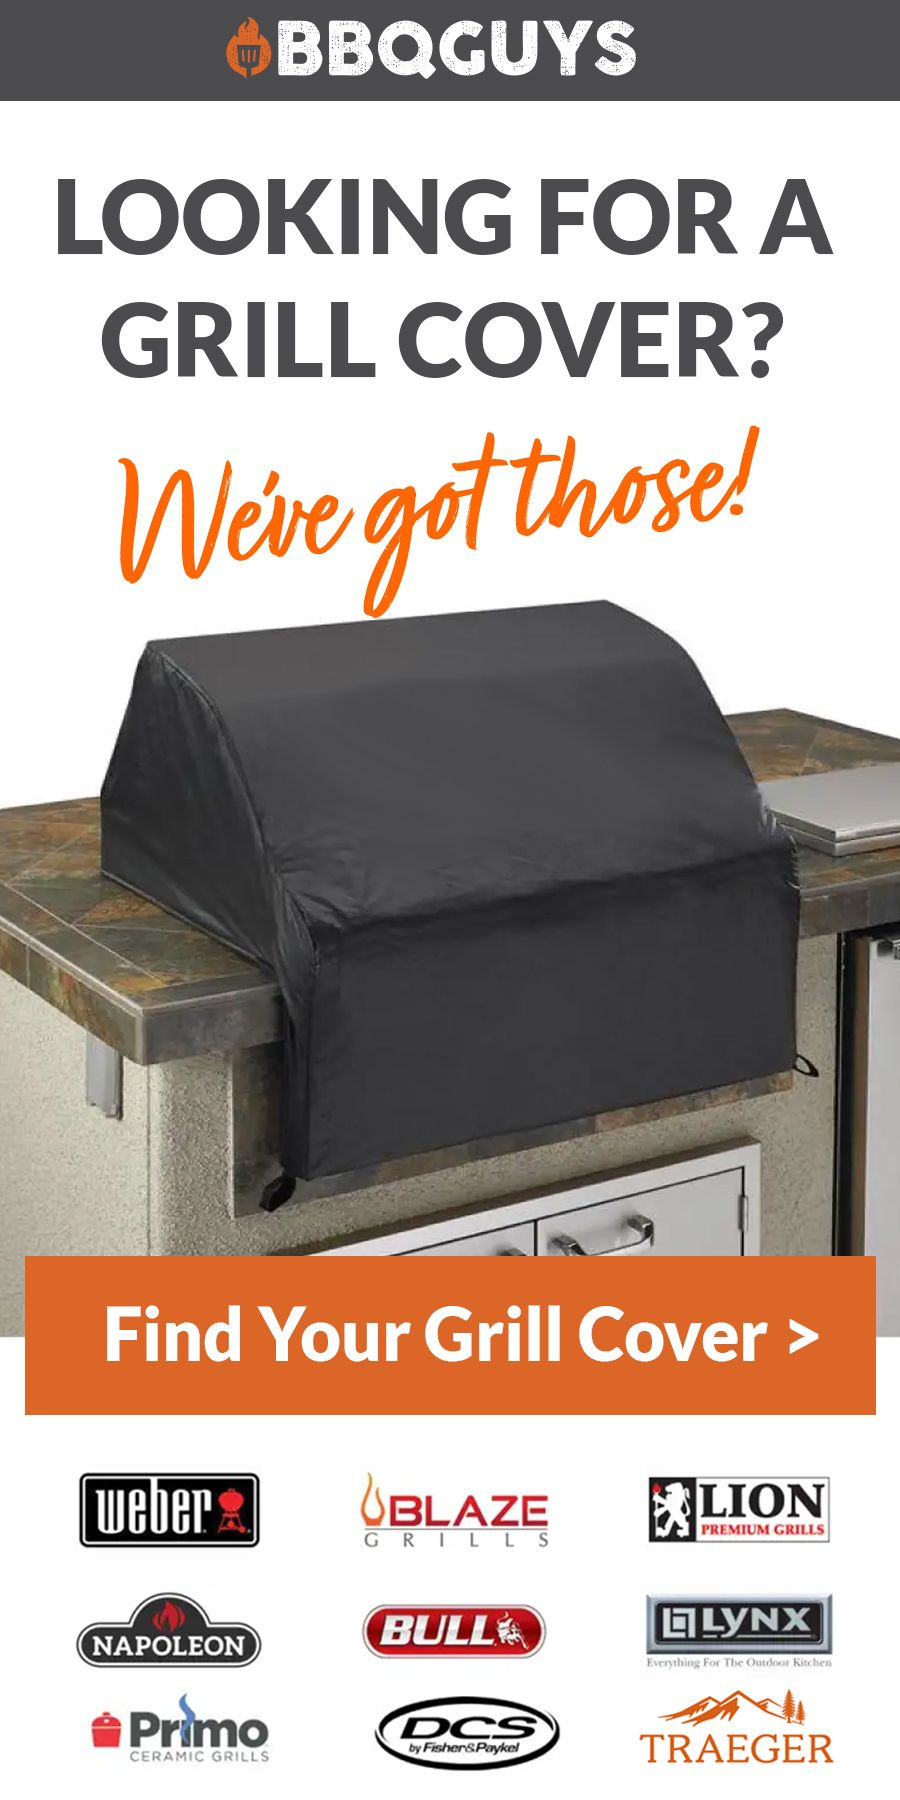 Protect Your Grill When It S Not In Use With A High Quality Grill Cover From Bbqguys Com Grill Cover Diy Outdoor Kitchen Bbq Equipment